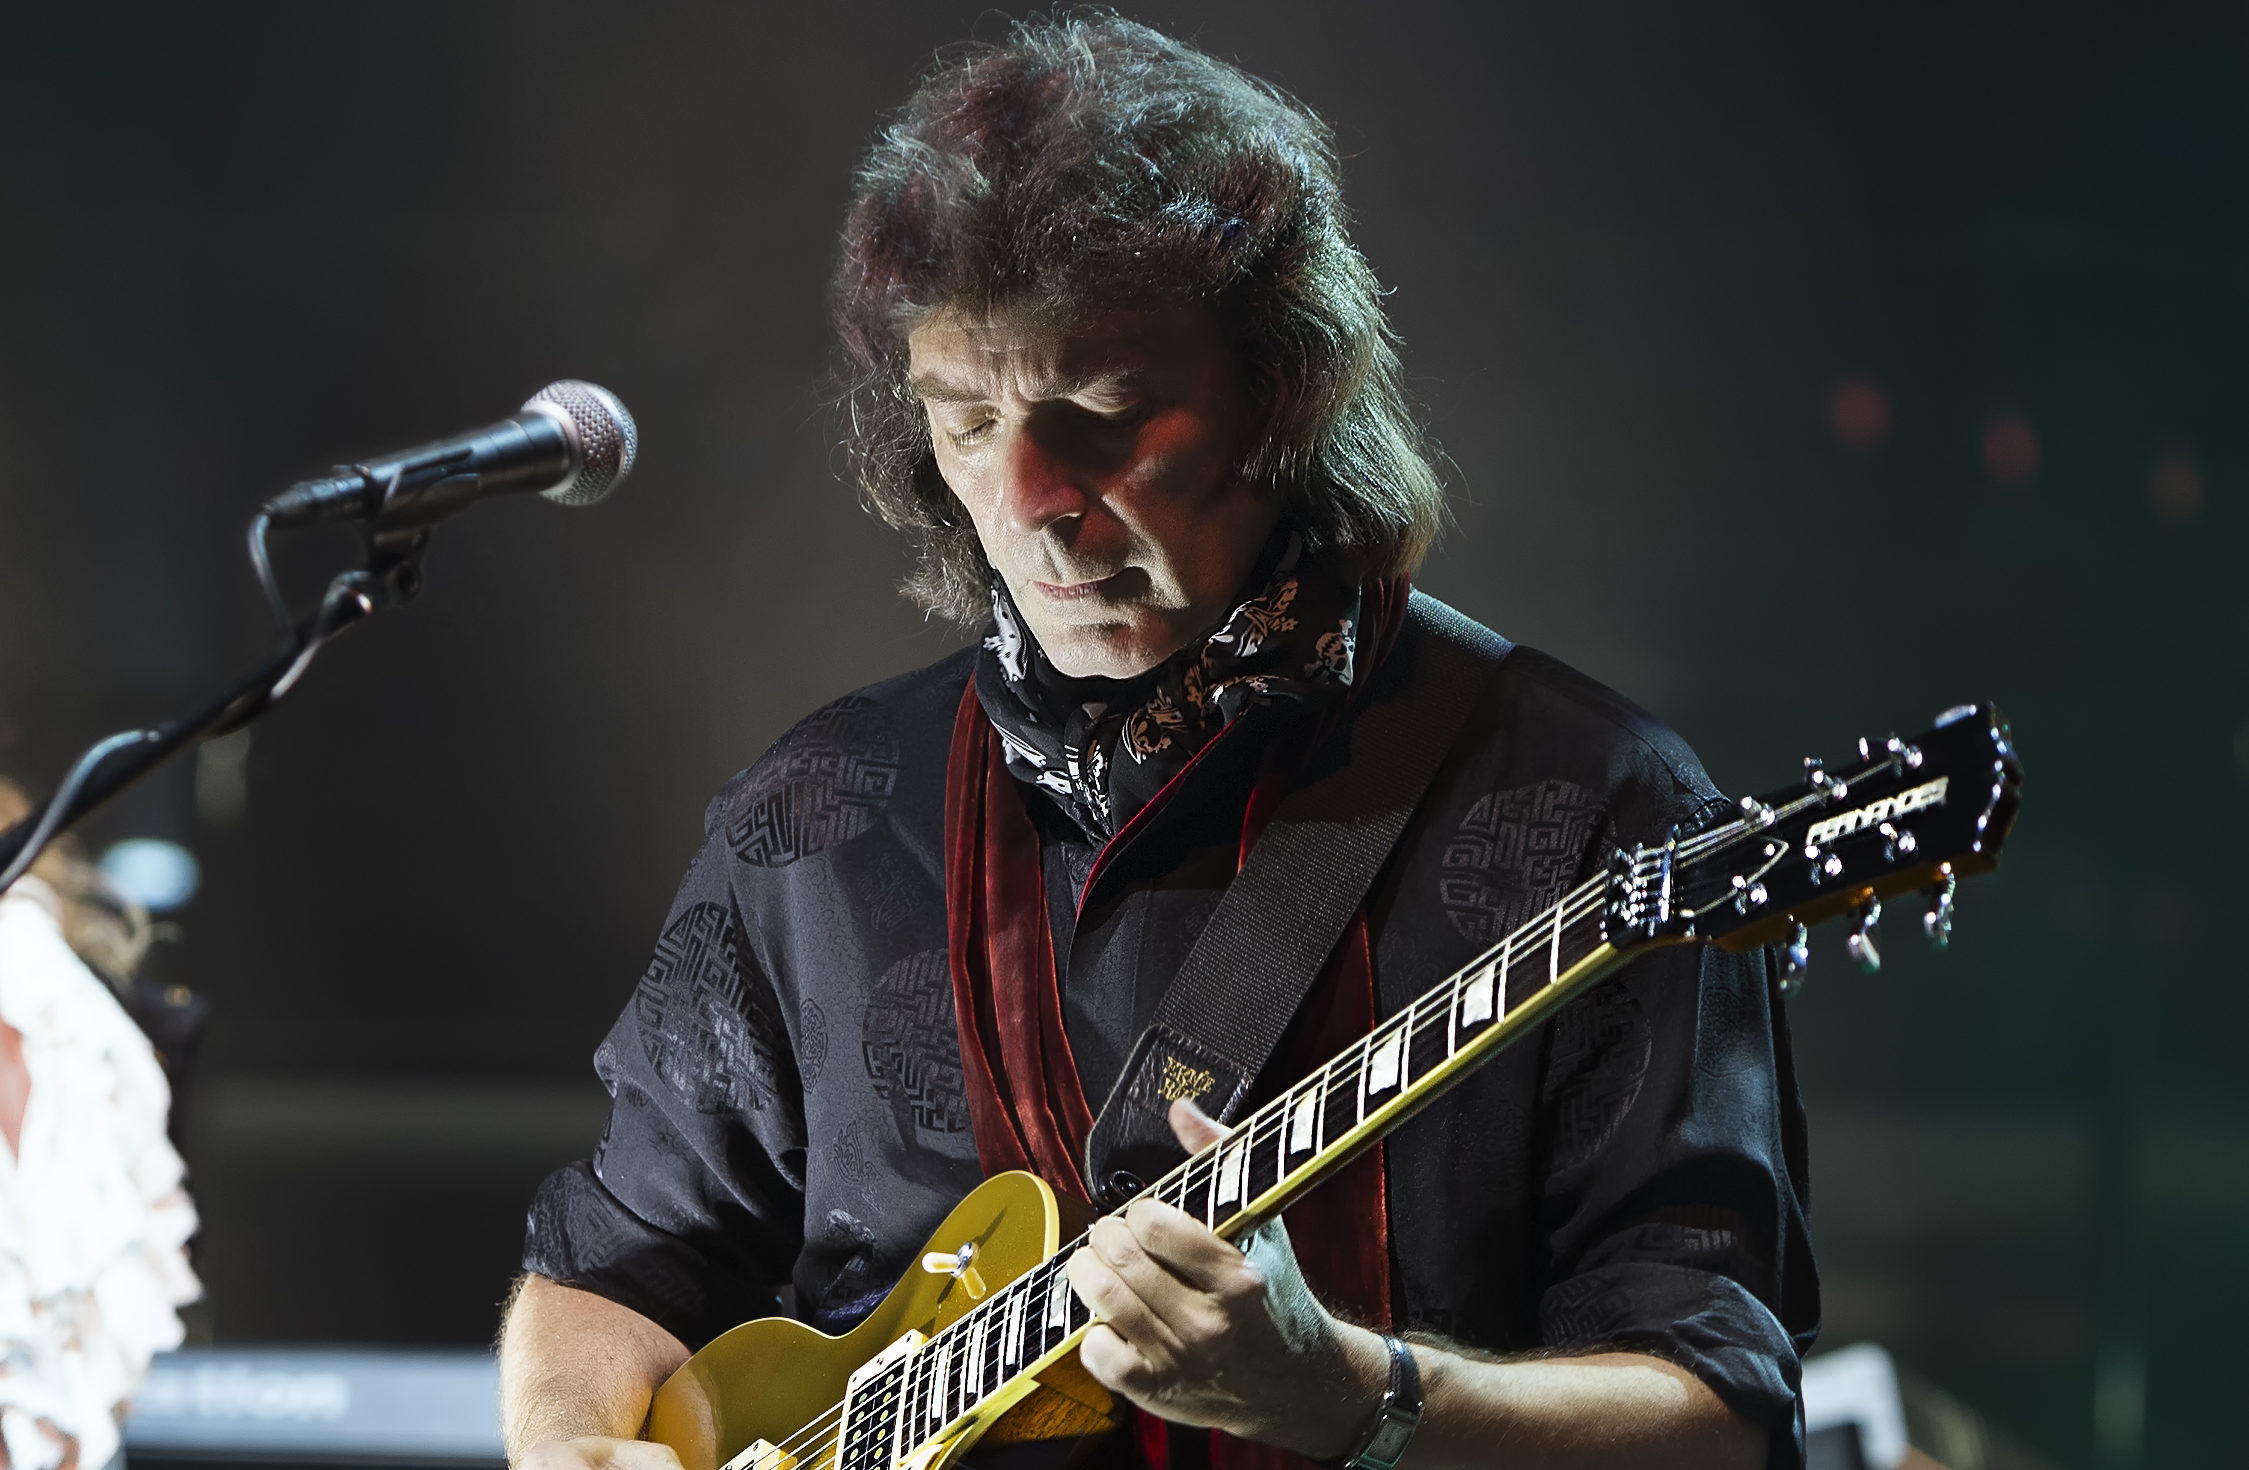 Steve Hackett on stage